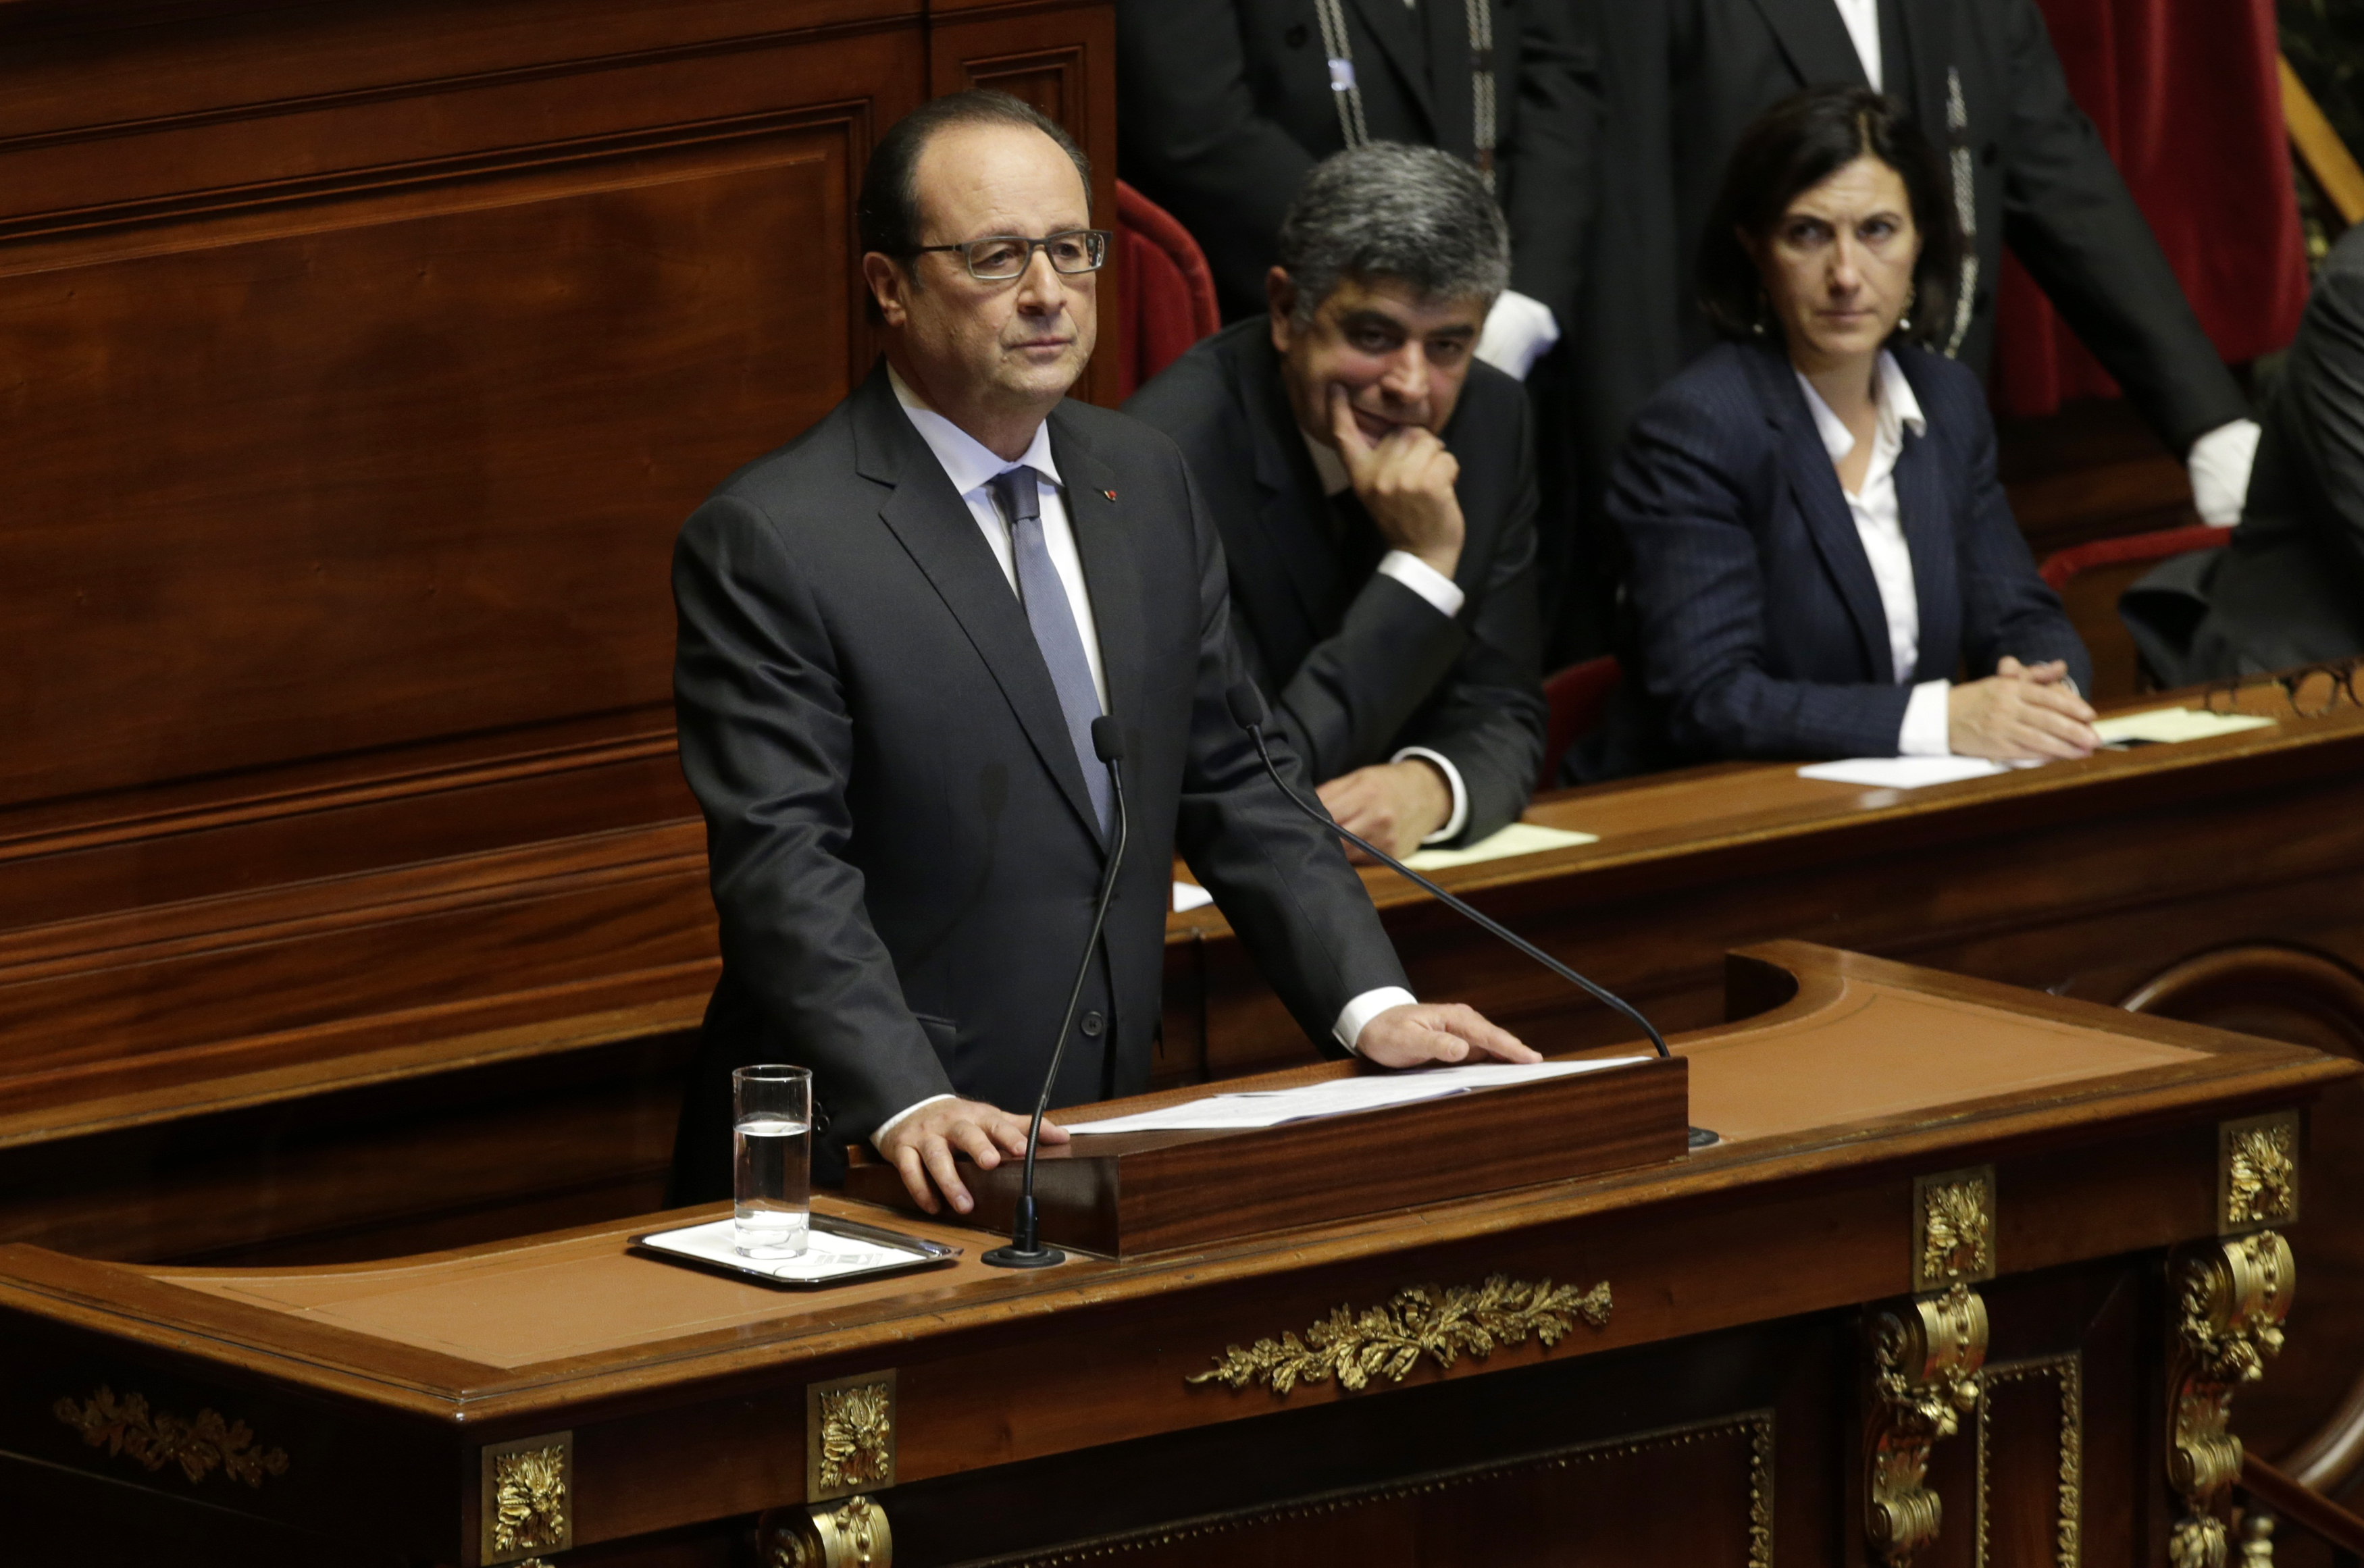 French President Francois Hollande delivers a speech at a special congress of the joint upper and lower houses of parliament at the Palace of Versailles, near Paris, France, Nov. 16, 2015.